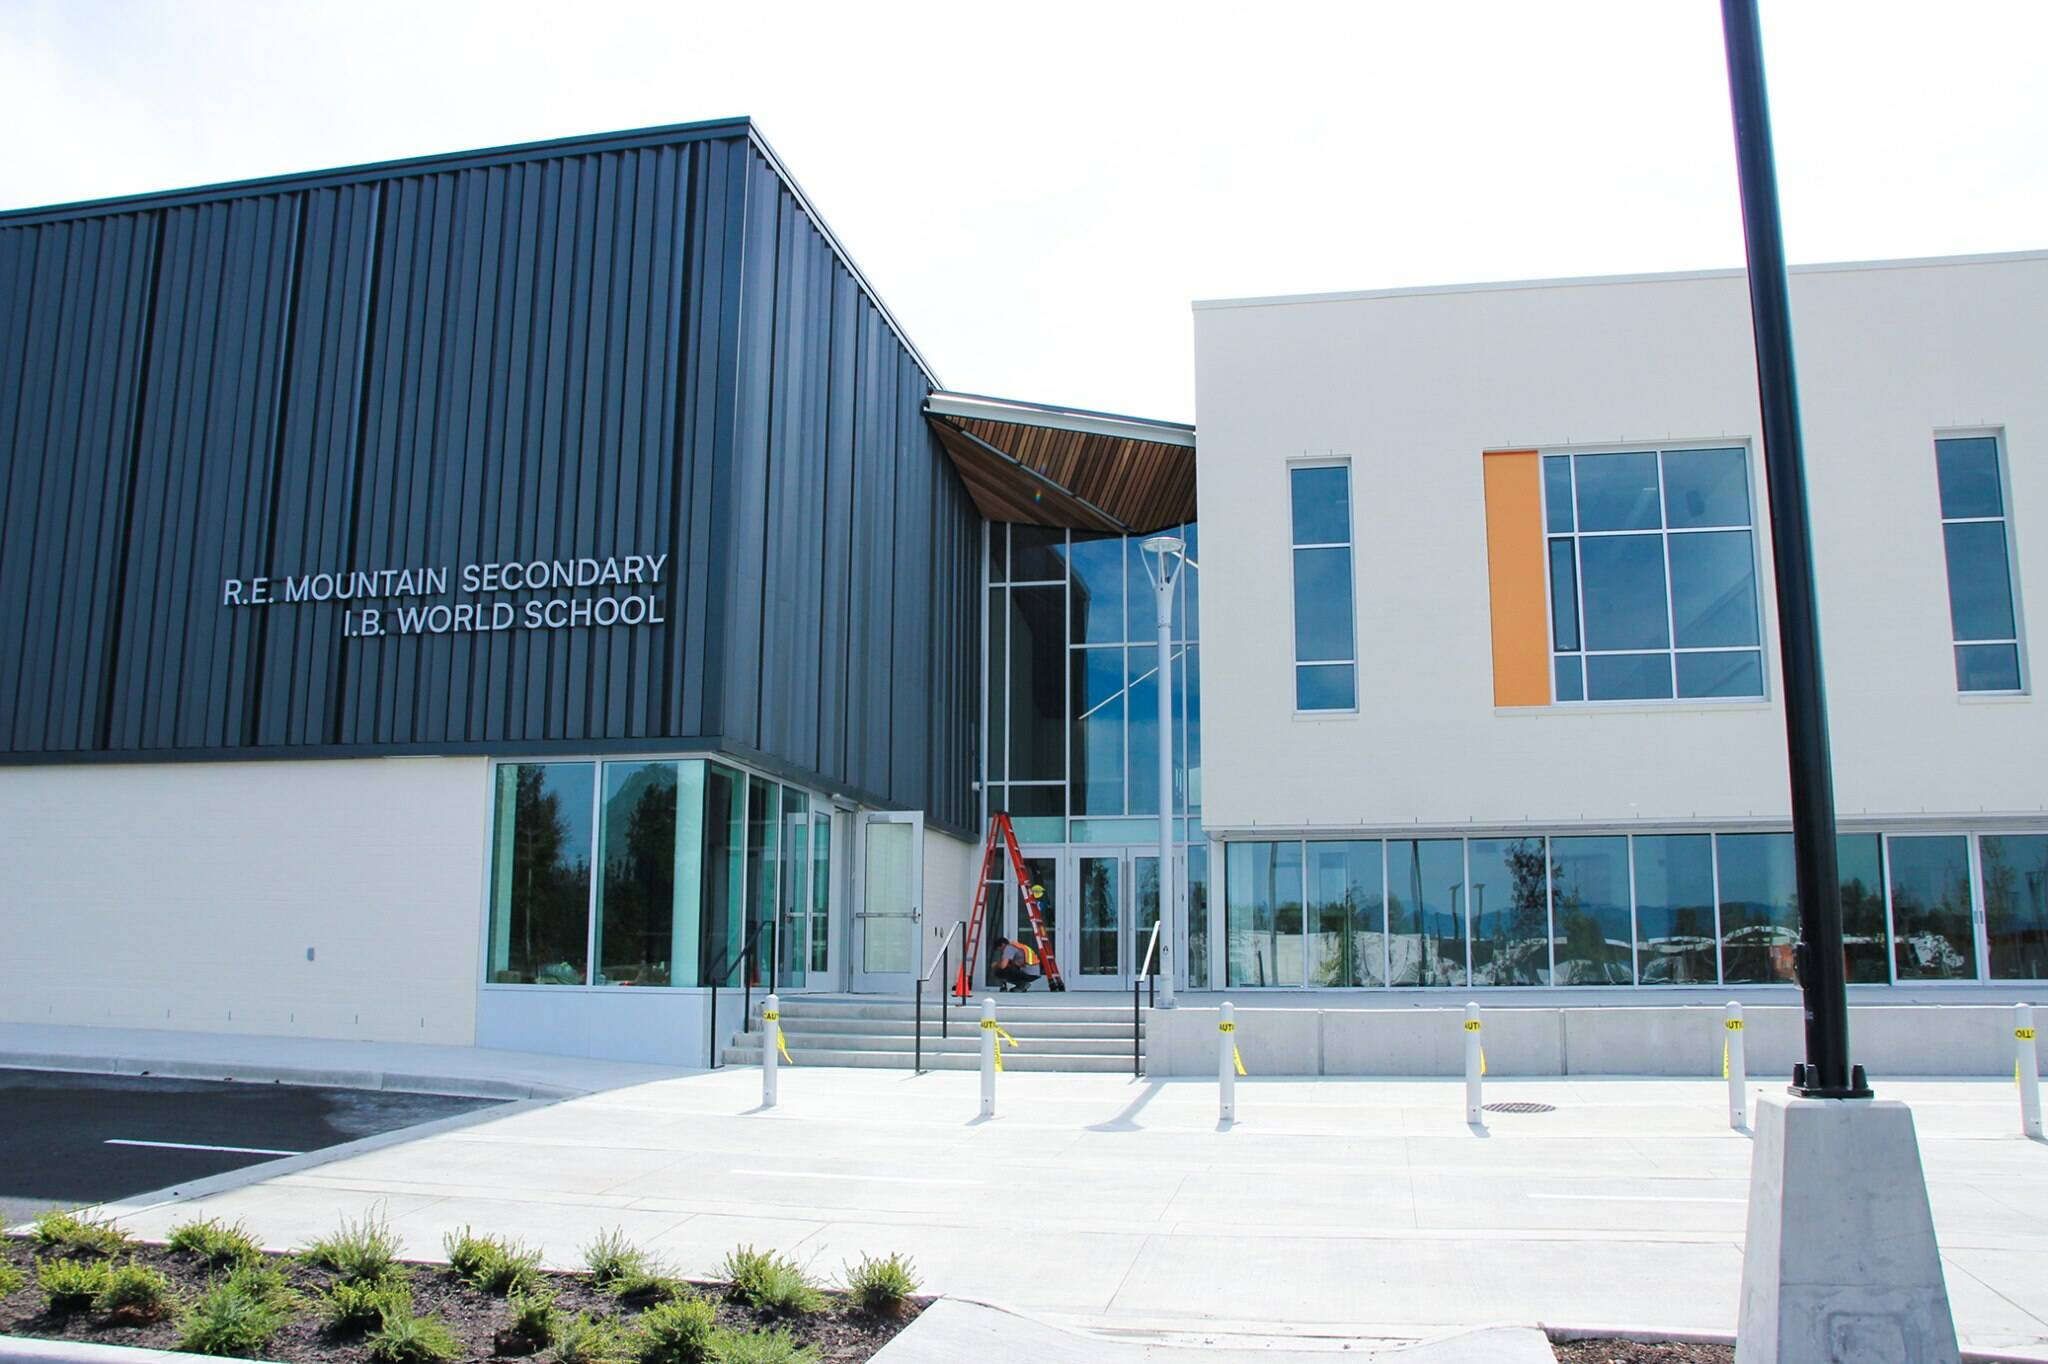 R.E. Mountain Secondary is one of the schools approaching capacity as hundreds of new students arrived in the district this year. (Langley School District)